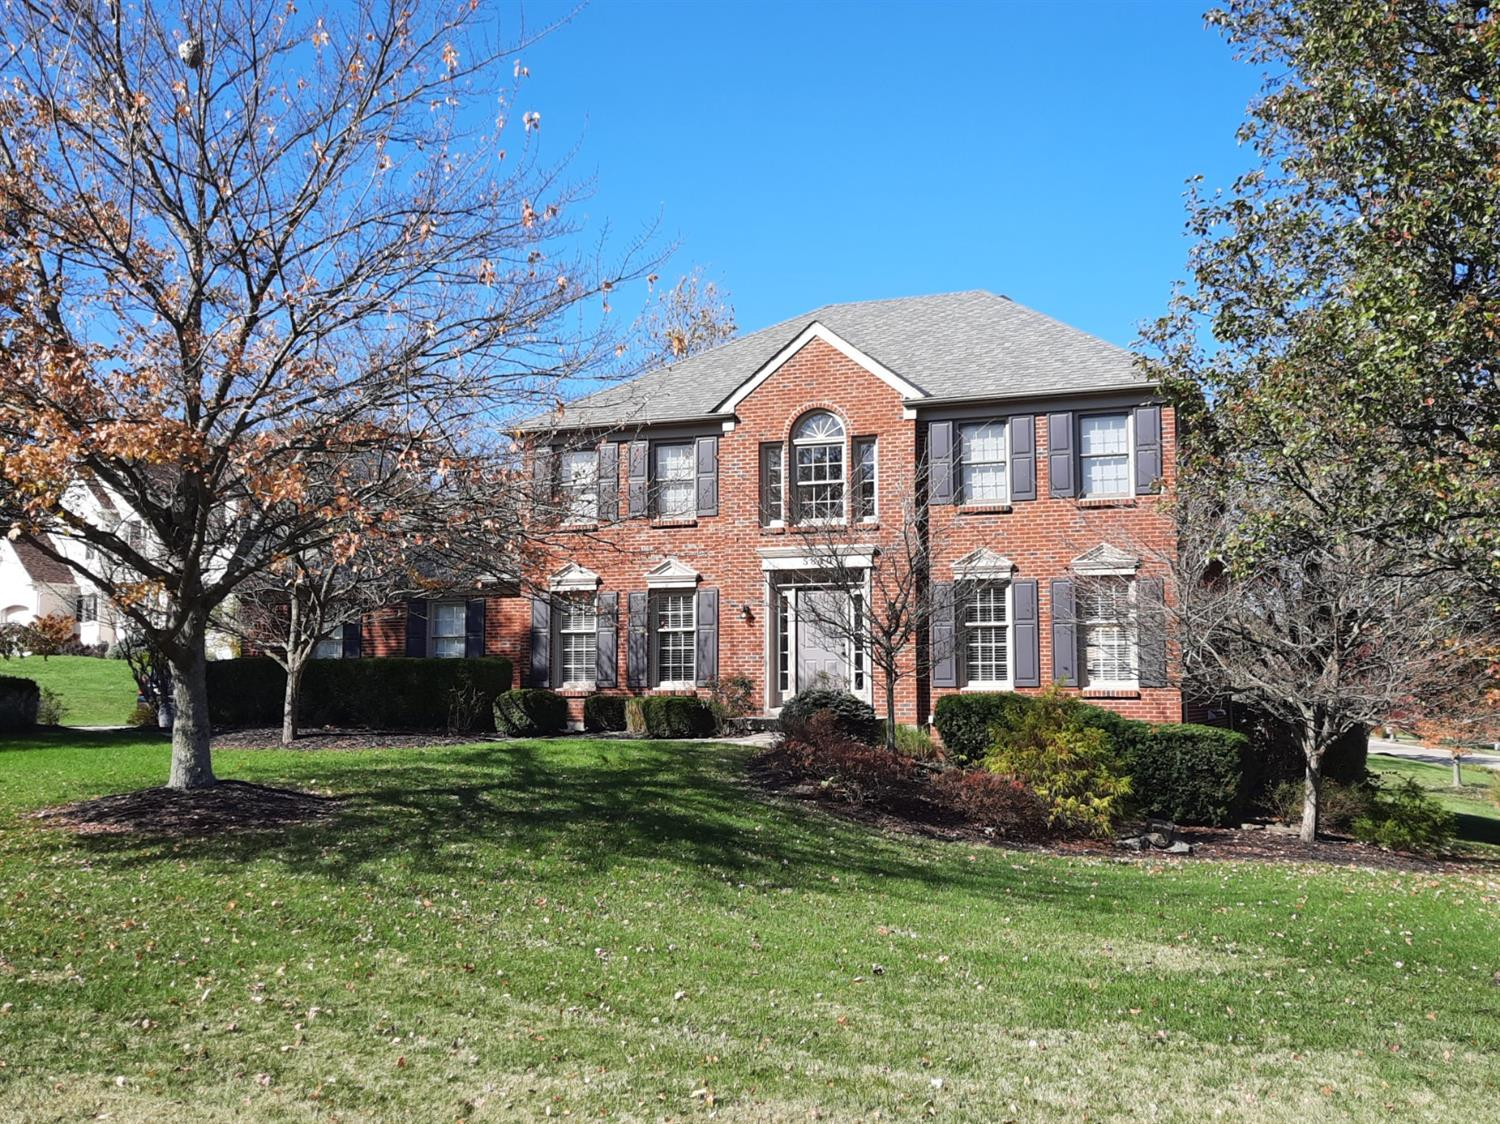 Photo of 5840 Winged Foot Drive, West Chester, OH 45069